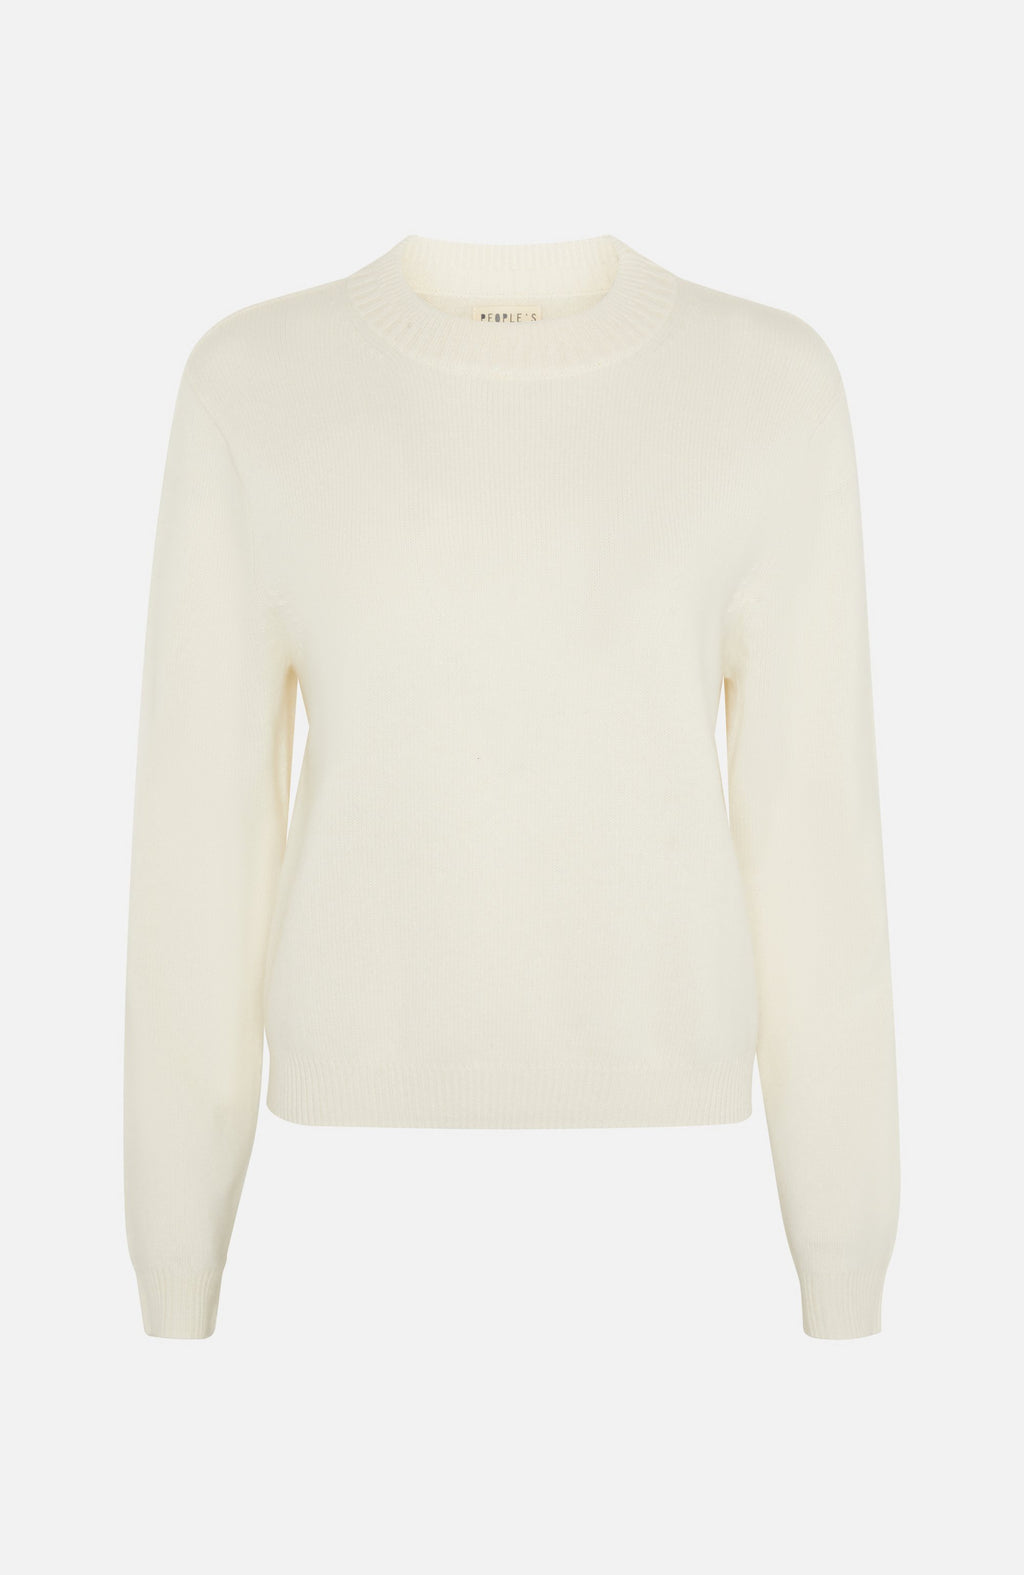 Republic Of Cashmere Crew Neck  White Sweater